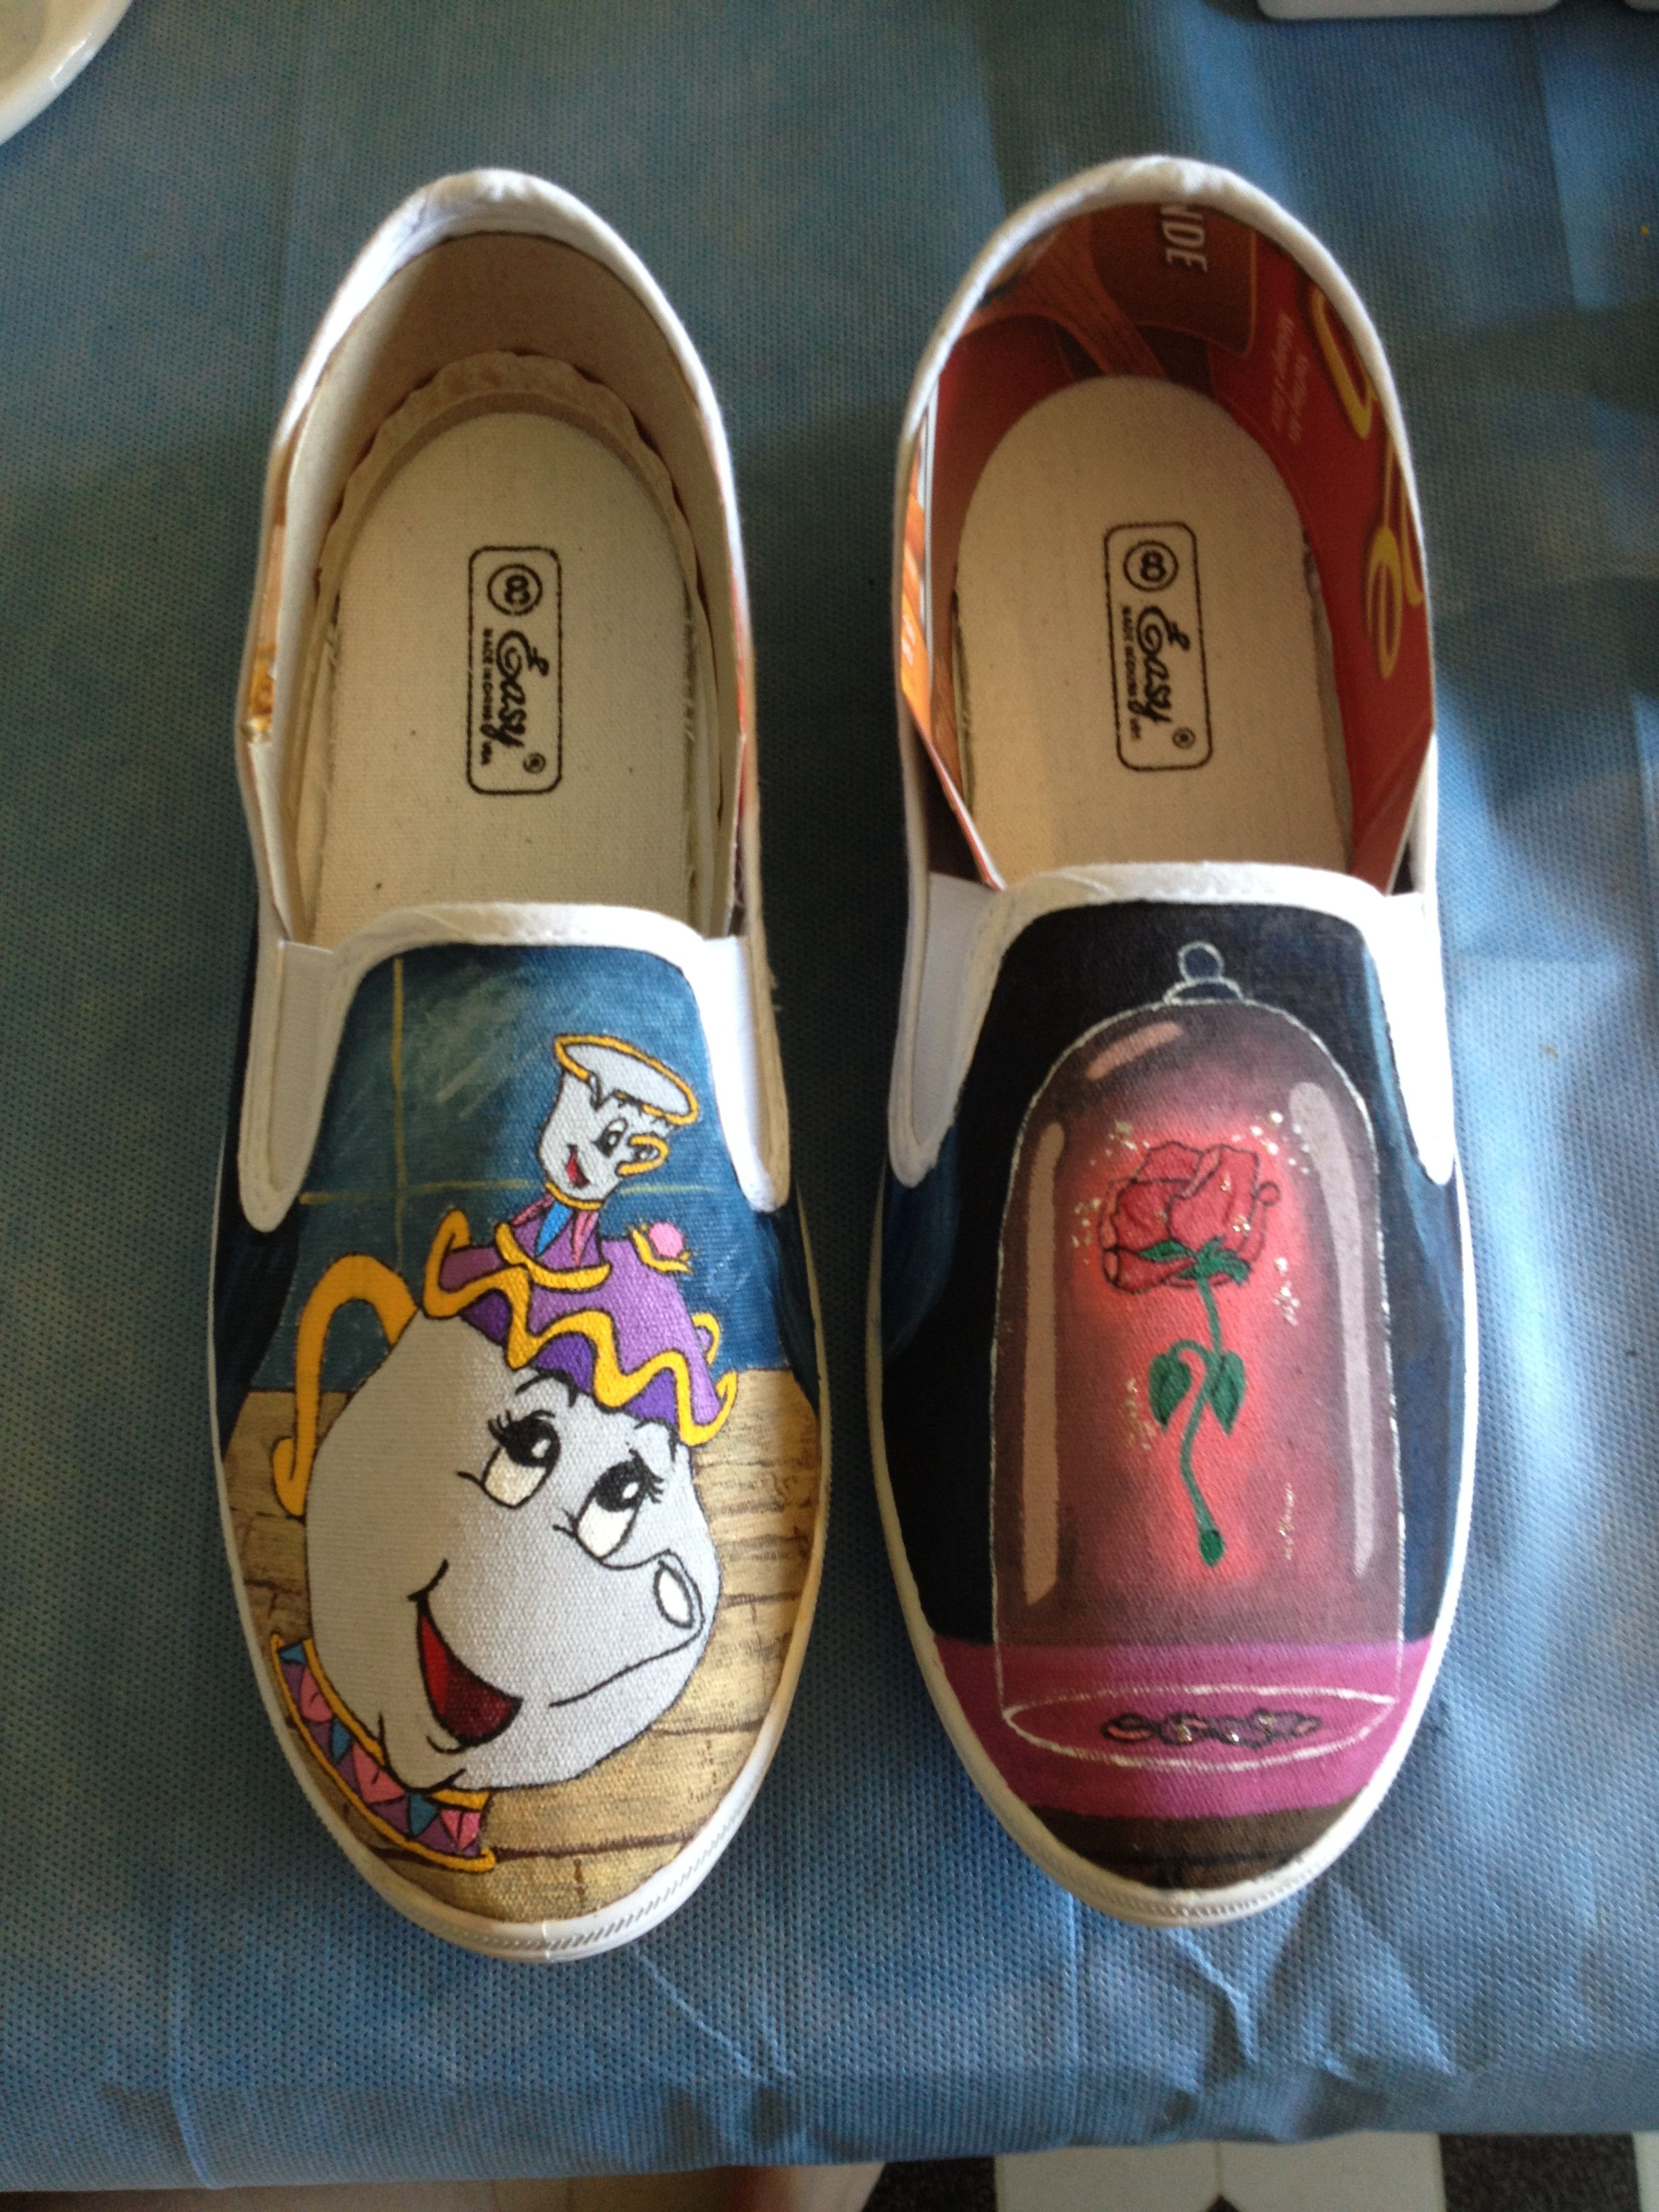 036c880d31a Beauty and the beast hand painted canvas shoe